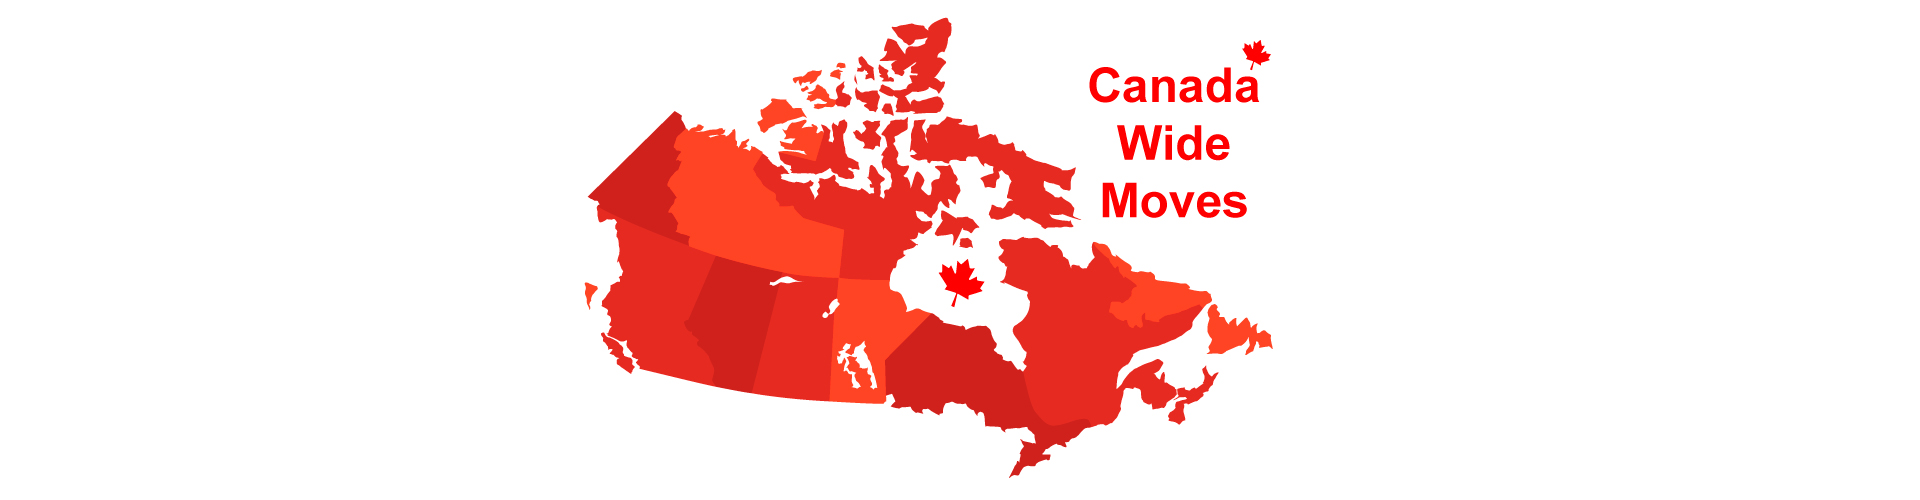 canada-moves-hss4